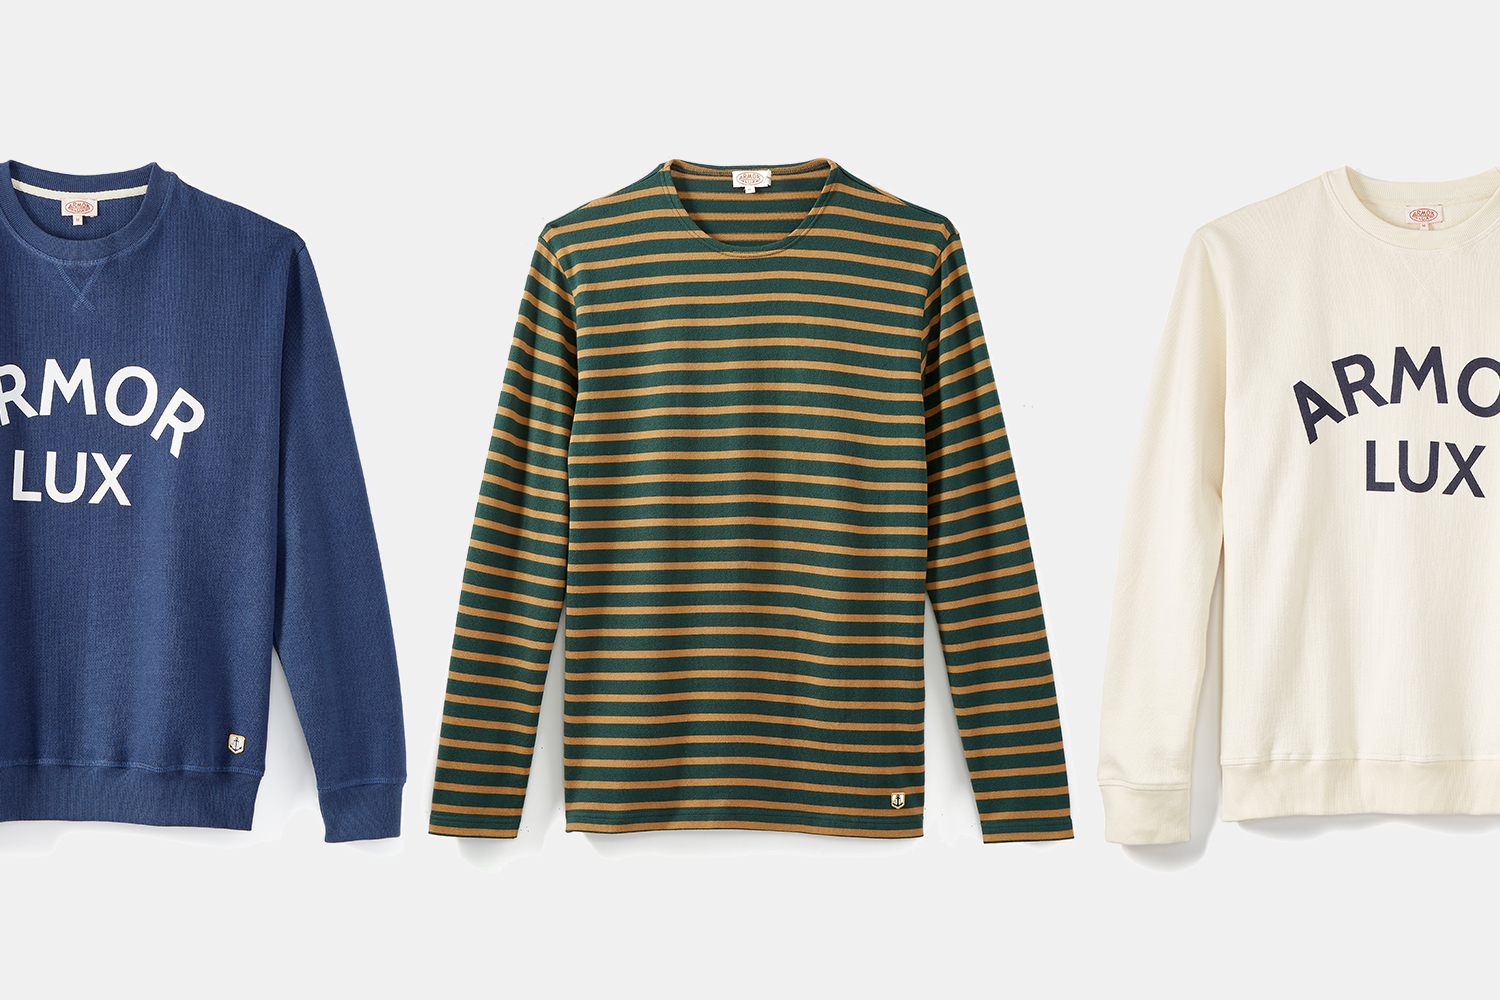 Armor-Lux Huckberry exclusive Breton stripe shirt and two sweatshirts